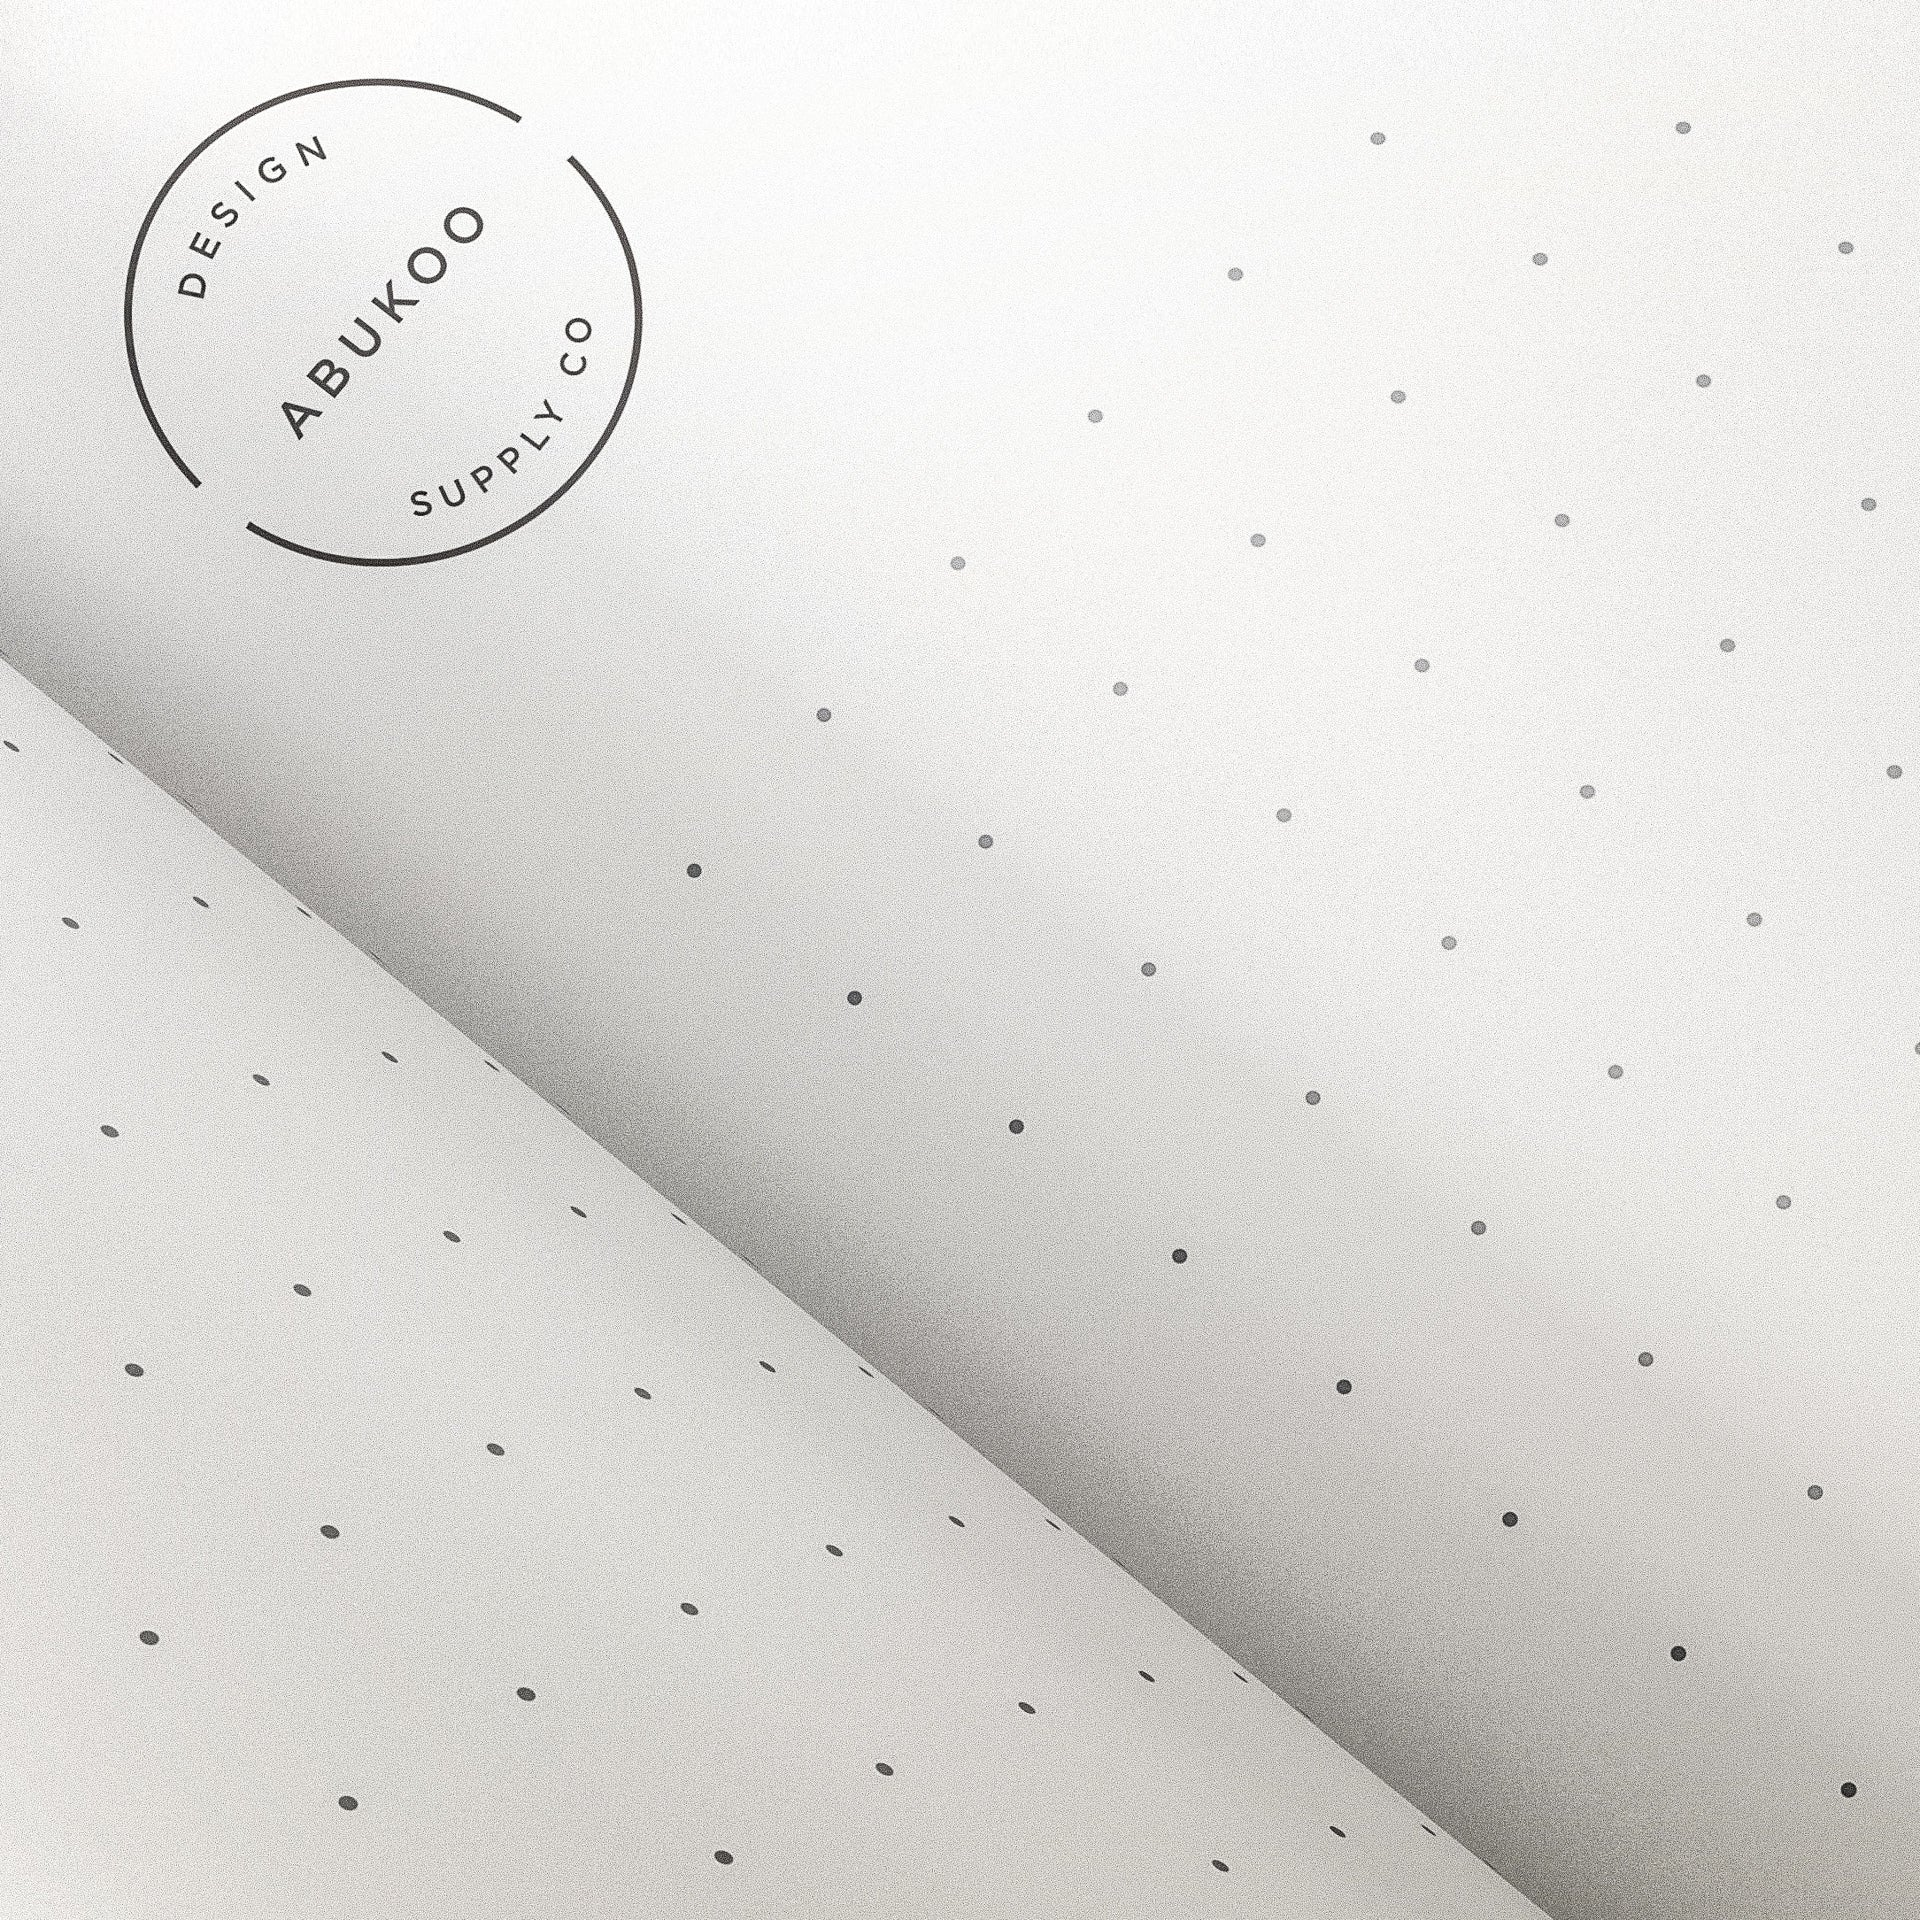 graphic regarding Printable Dot Grid identified as No cost Printable Graph Paper - Abukoo